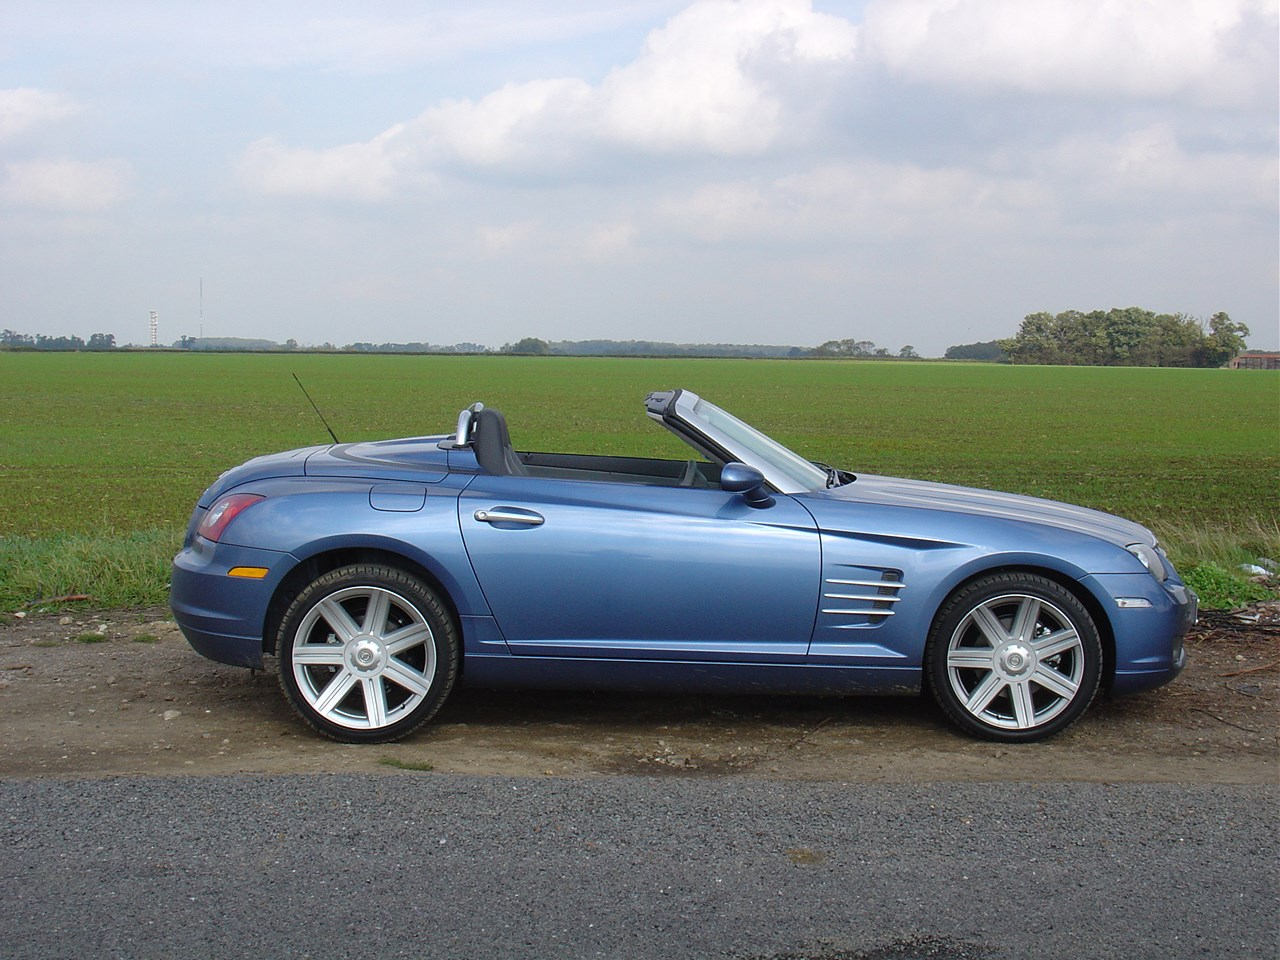 Purchase Used Chrysler Crossfire Convertible Grey: Chrysler Crossfire Roadster Review (2004 - 2008)